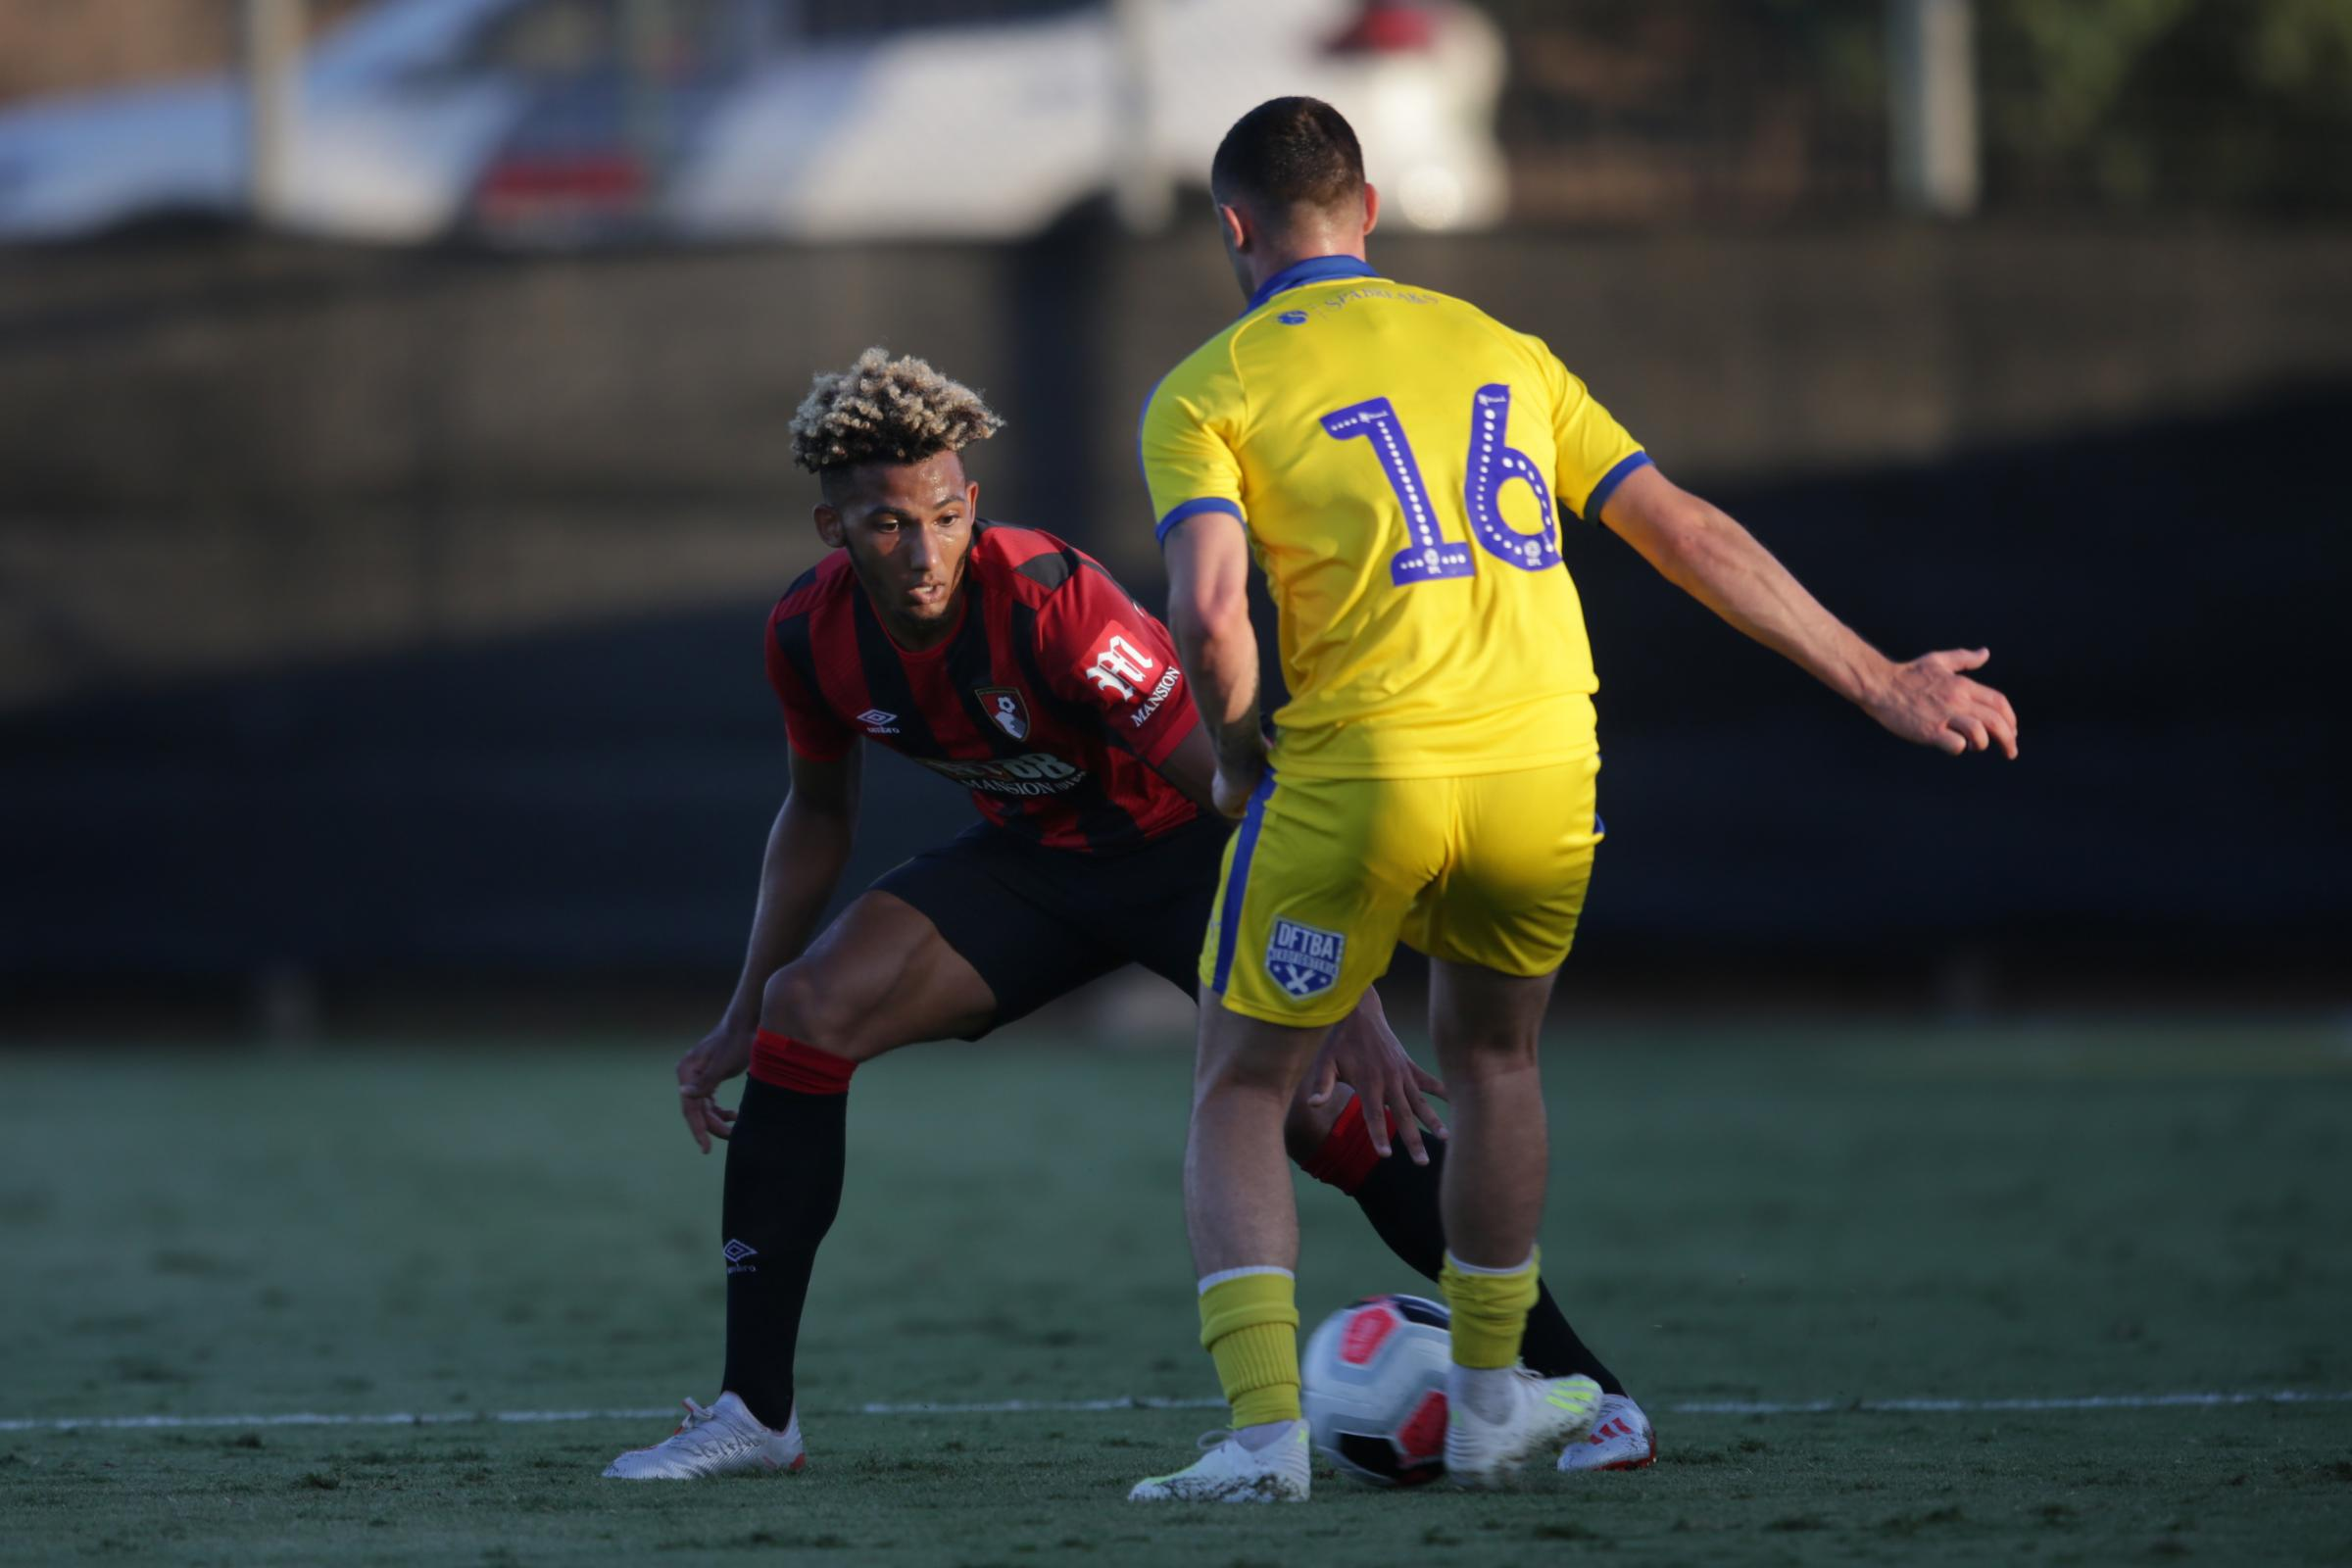 'I'm just looking forward to making that my position' - Lloyd Kelly eyes left-back spot at AFC Bournemouth as he nears his return from injury